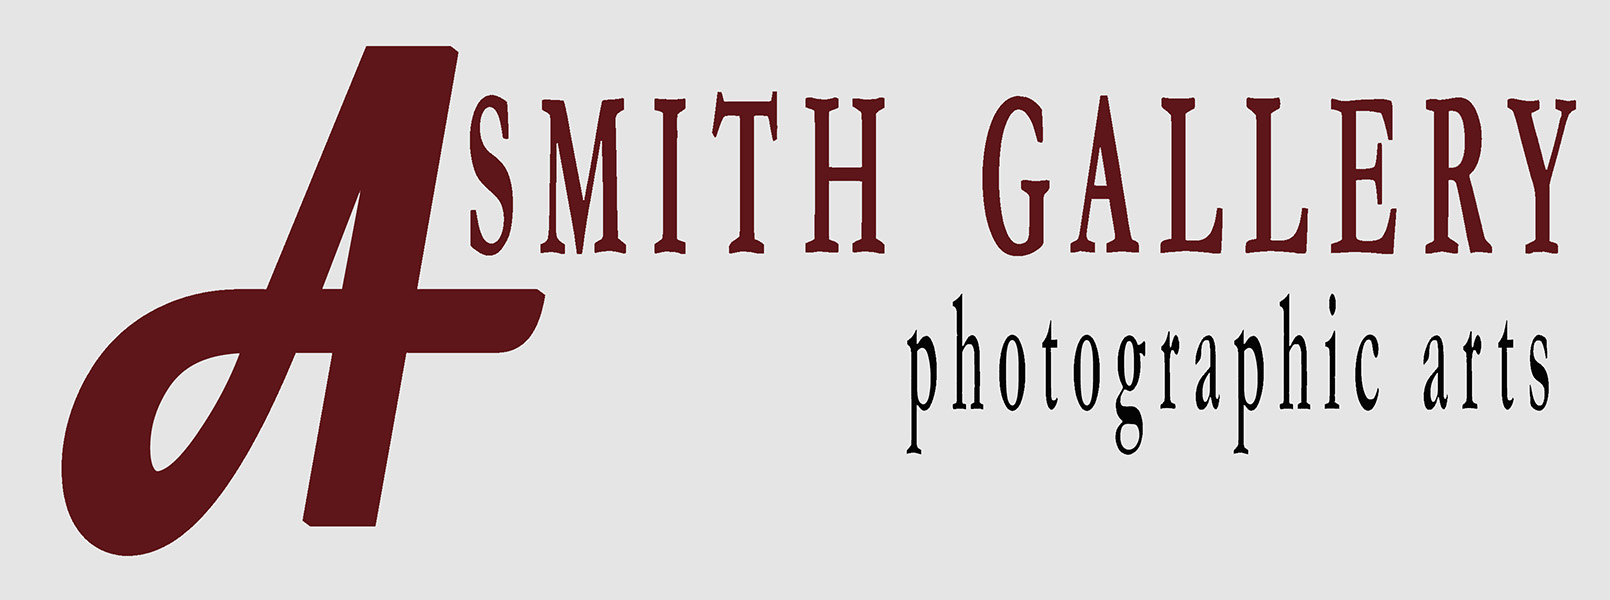 Smith Gallery Photographic